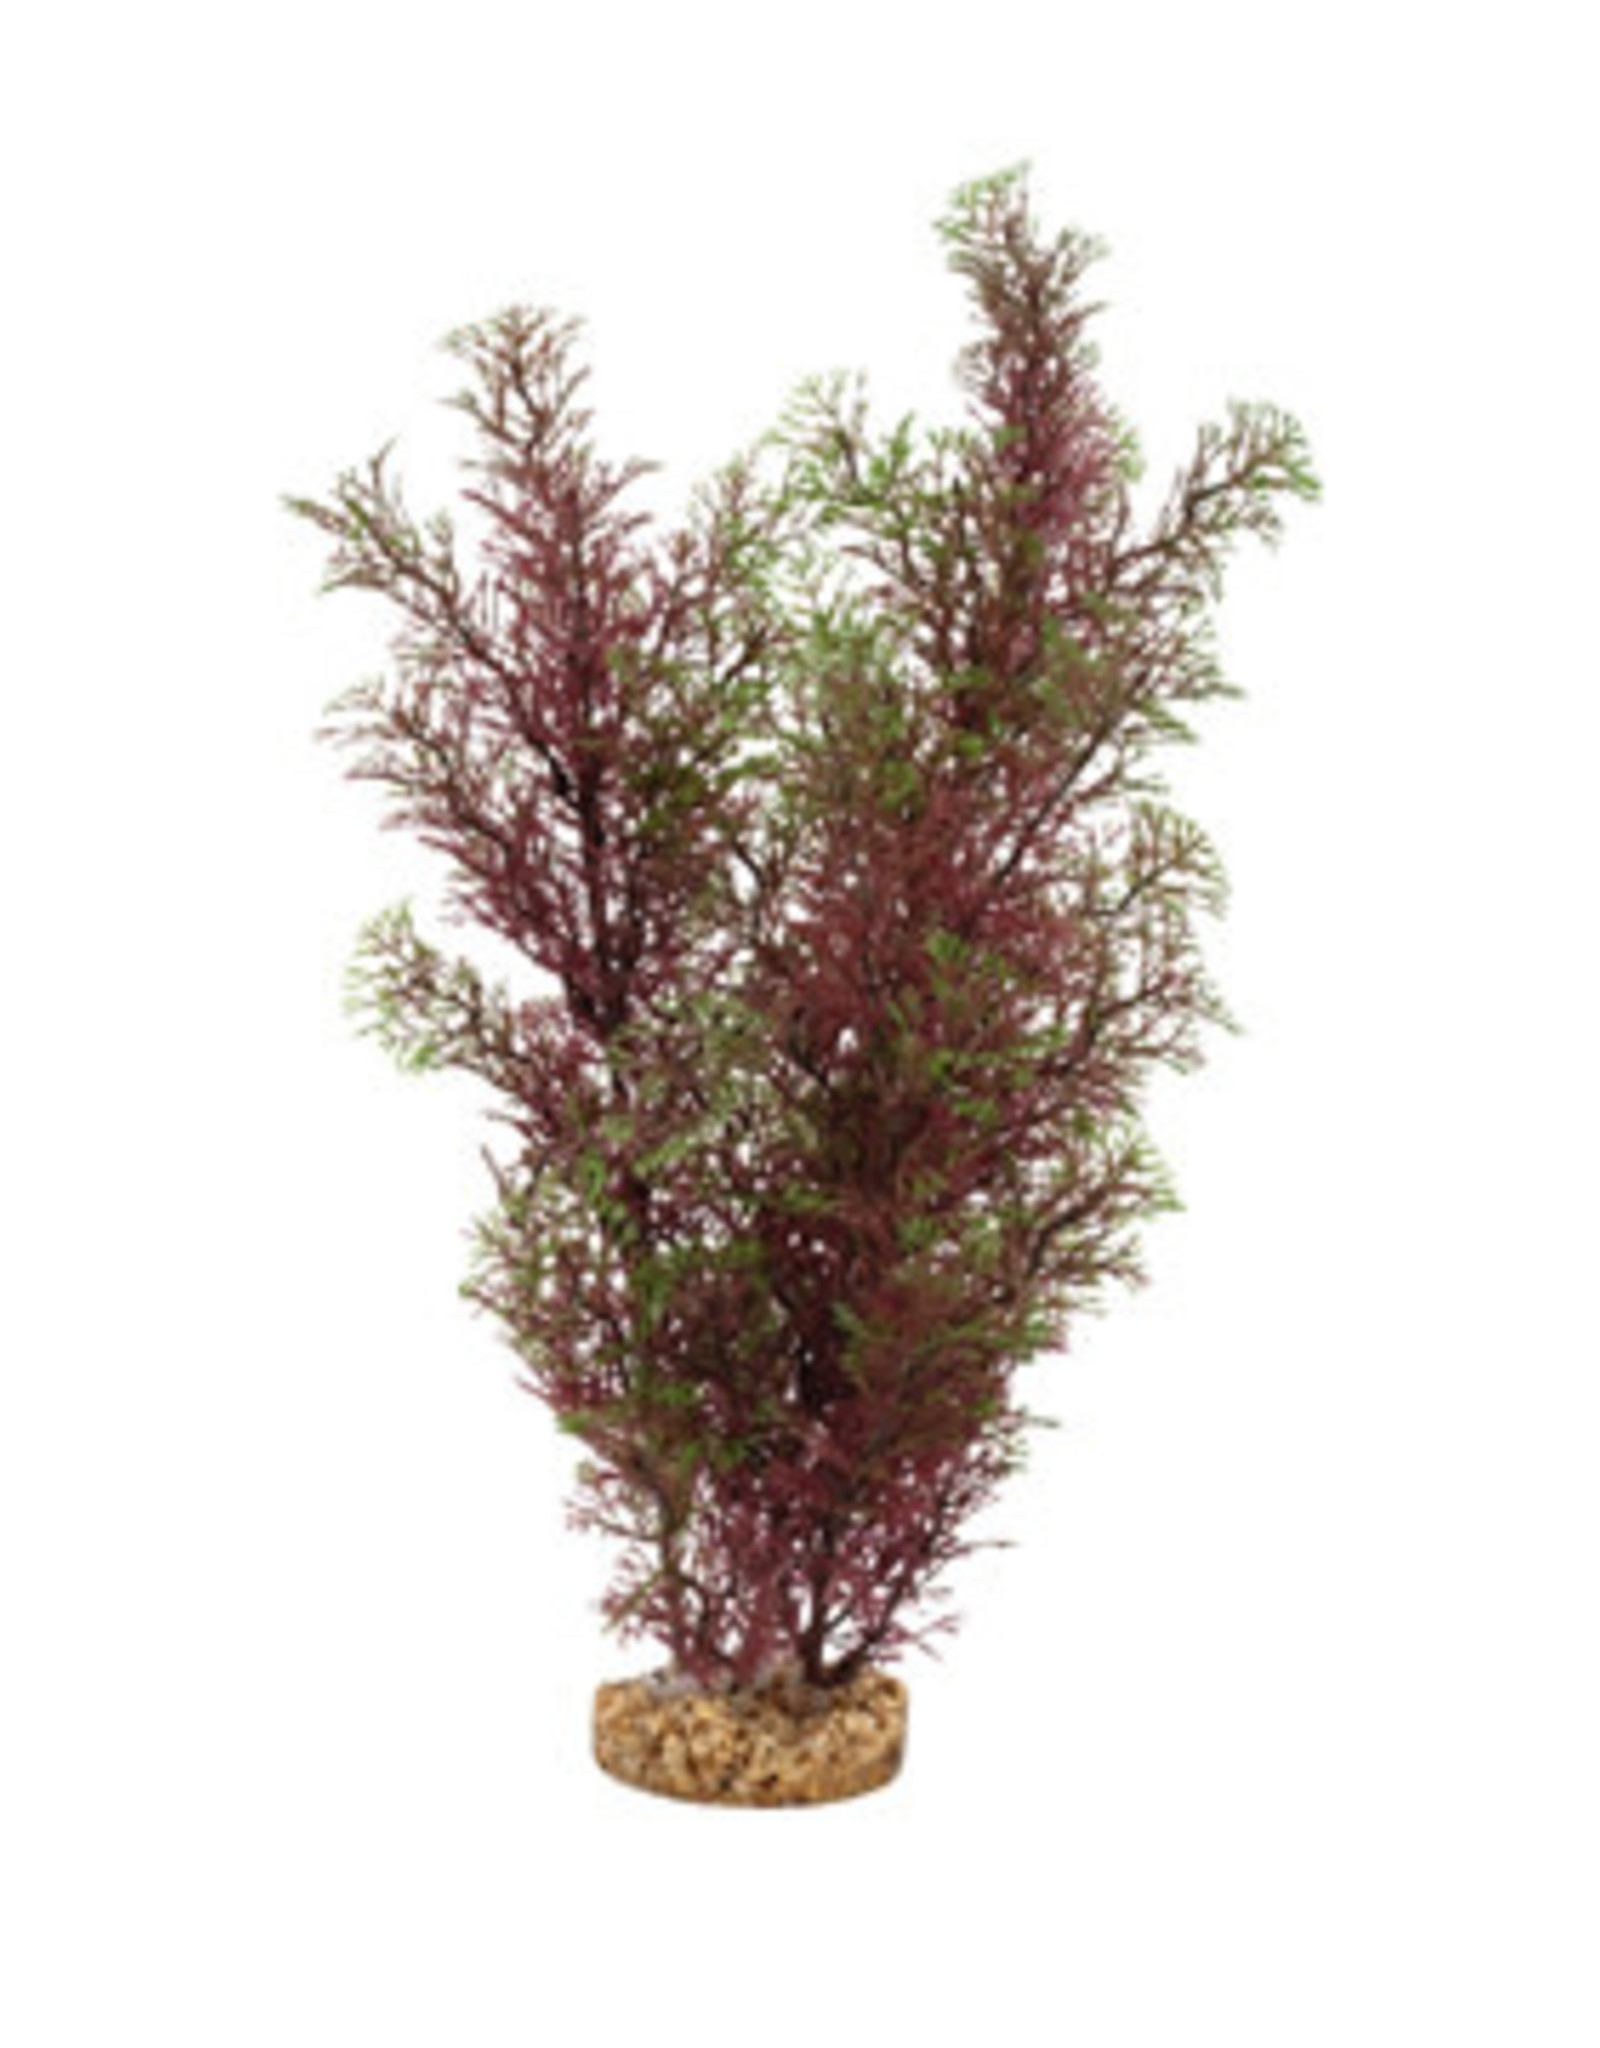 Fluval Fluval Aqualife Plant Scapes Red/Green Foxtail - 35.5 cm (14 in)